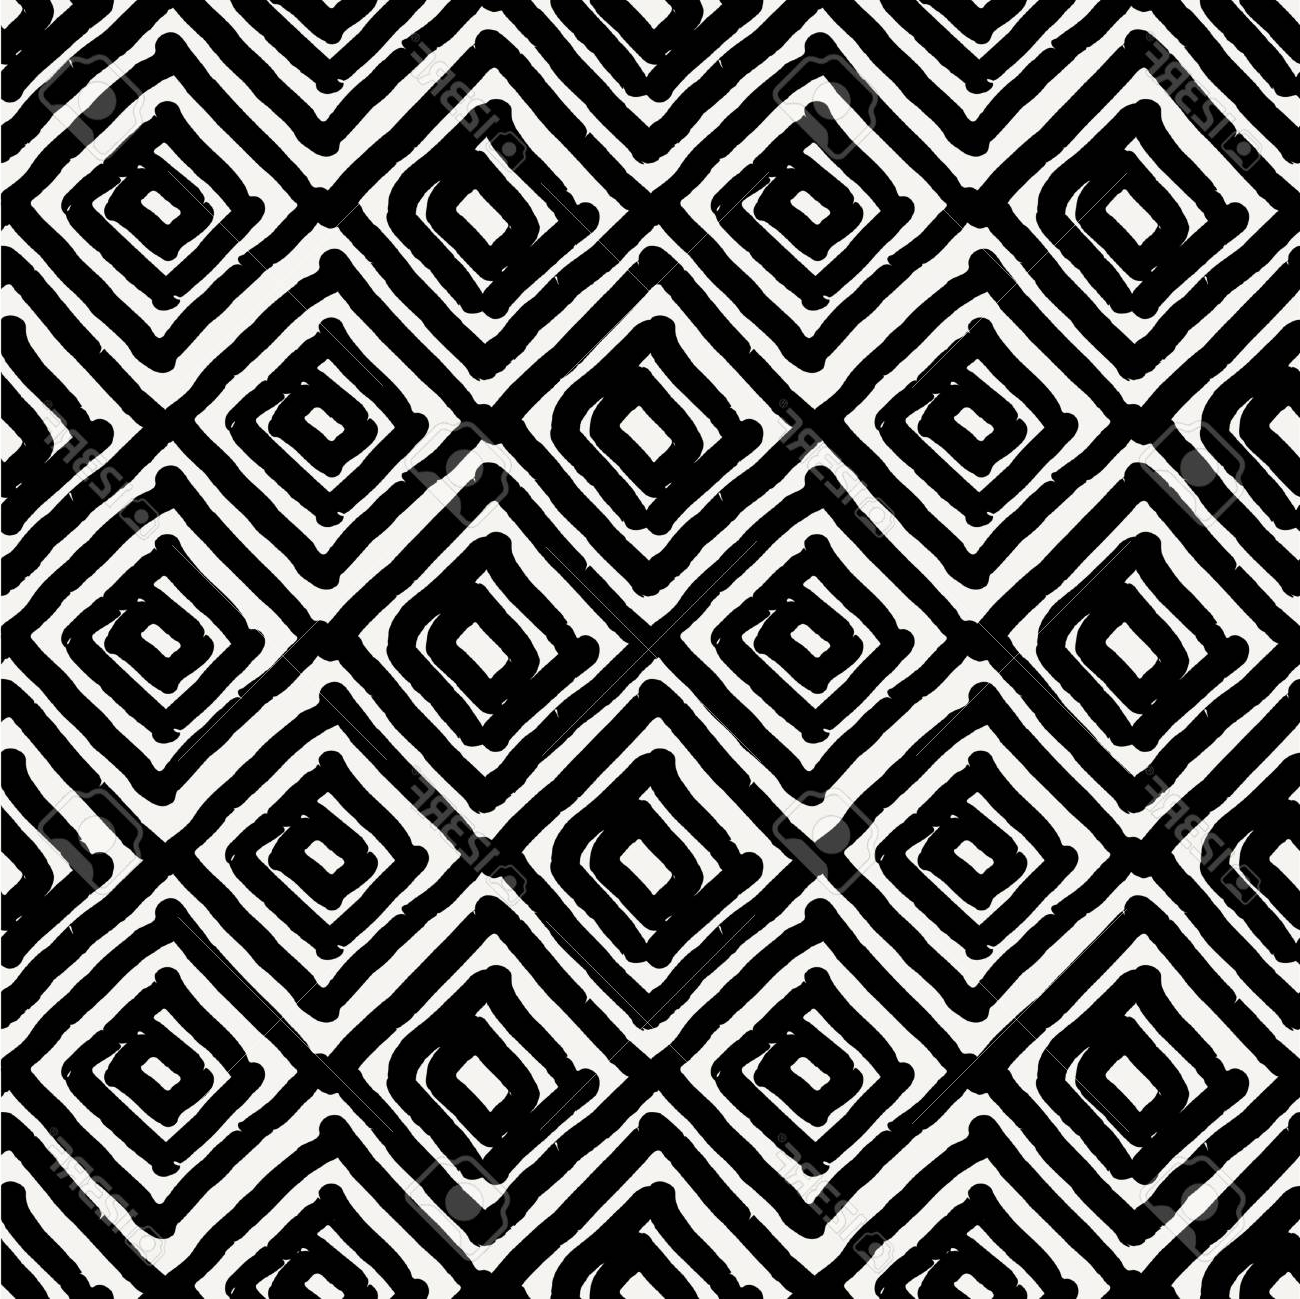 Hand Drawn Seamless Diamond Shapes Pattern In Black And Cream Pertaining To Current Modern Textile Wall Art (Gallery 15 of 15)